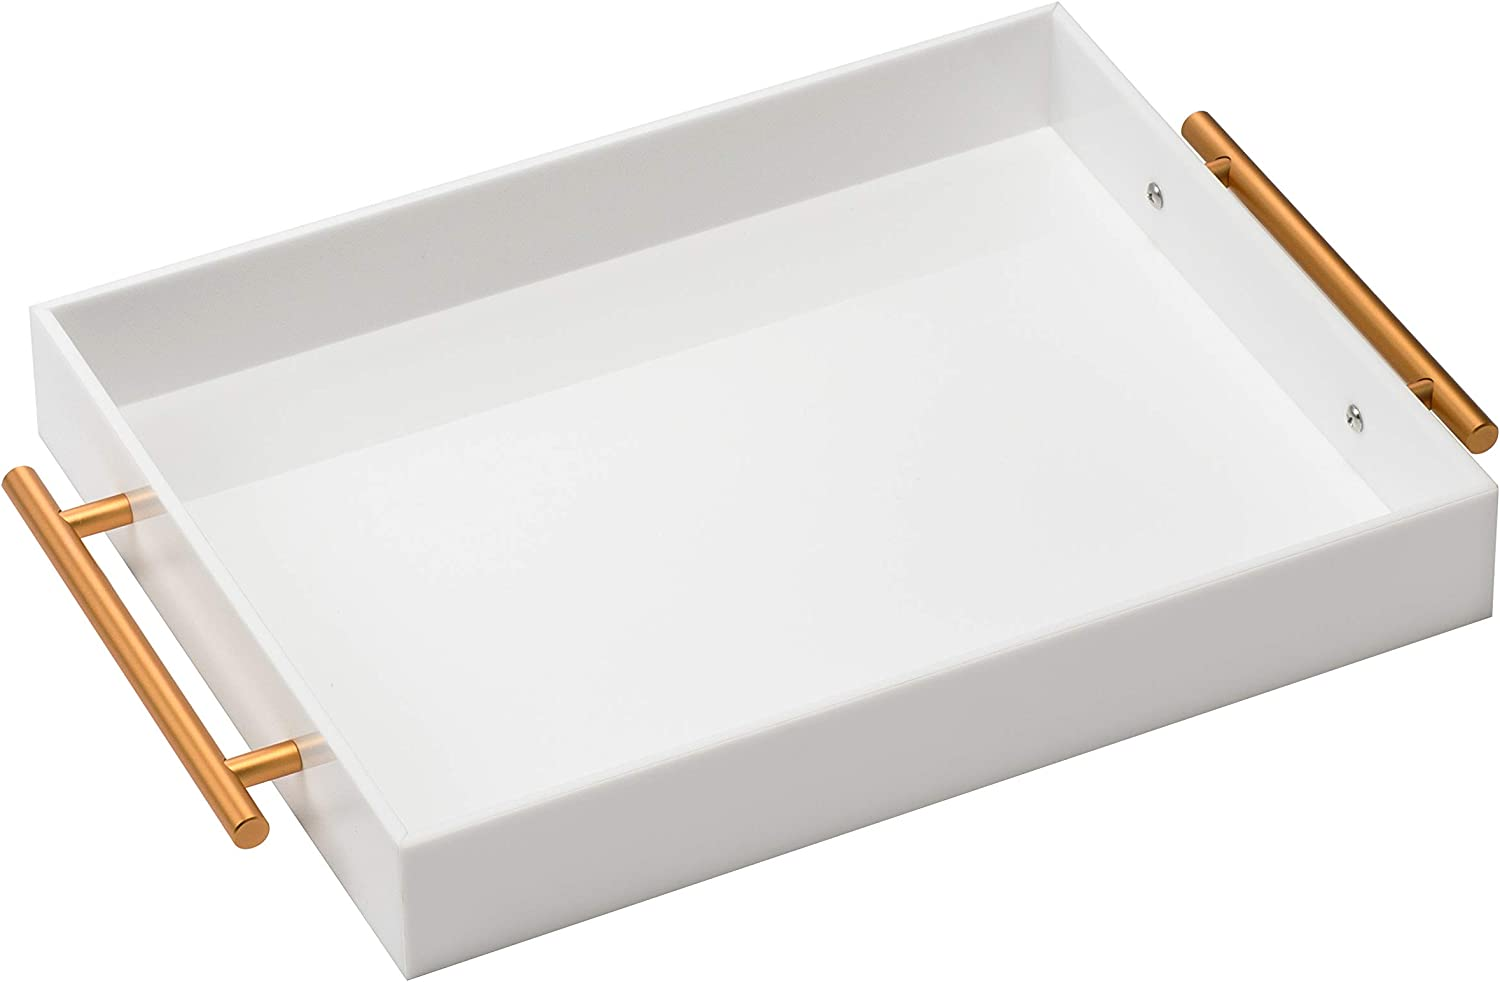 Glossy White Acrylic Tray with Metal Handle-Acrylic Tray for Ottoman,Coffee Table, Breakfast, Tea, Food, Butler - Decorative Tray (12x18 Inch, White)